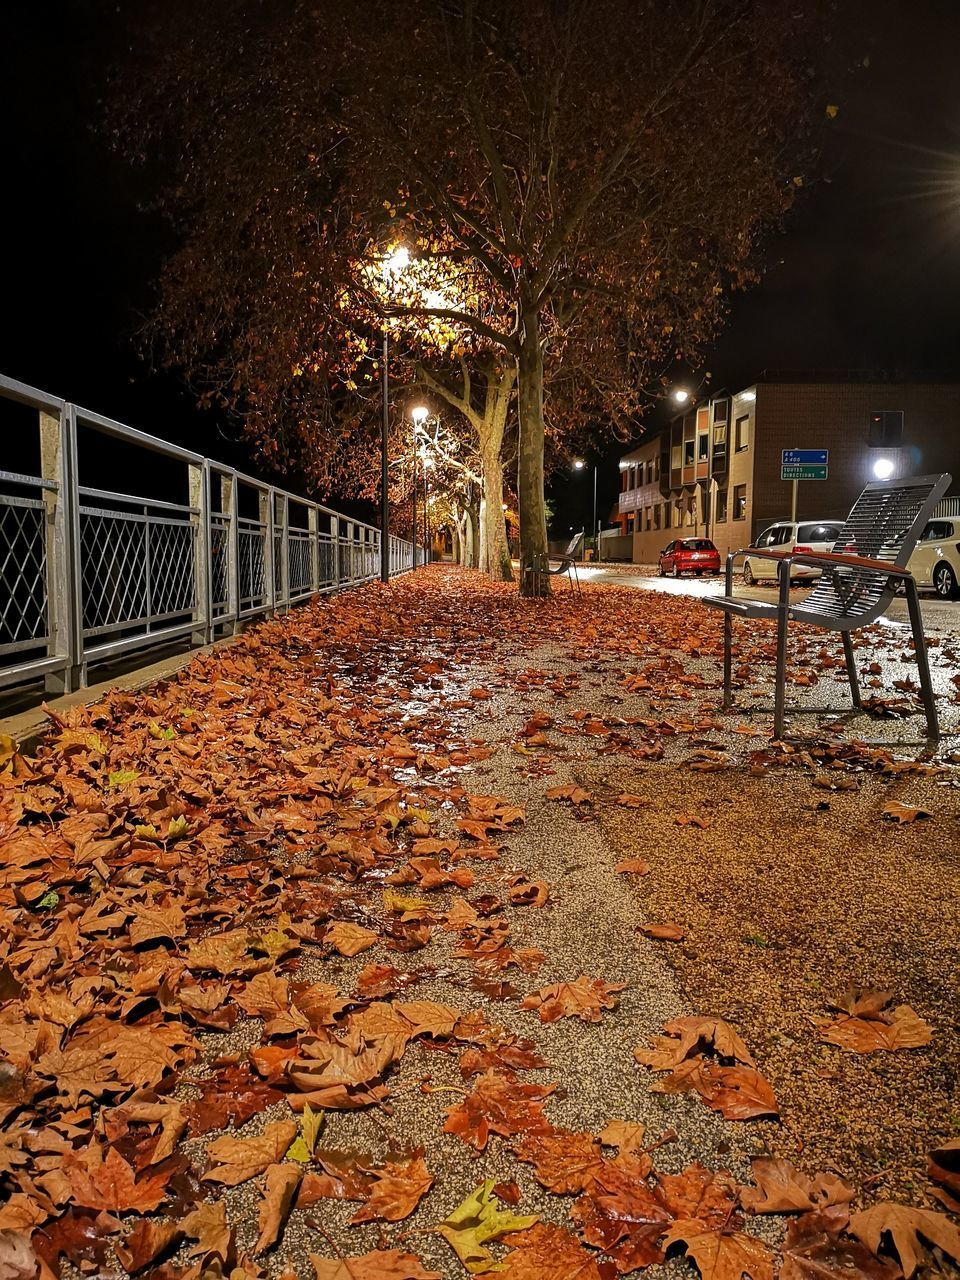 AUTUMN LEAVES ON FOOTPATH IN CITY